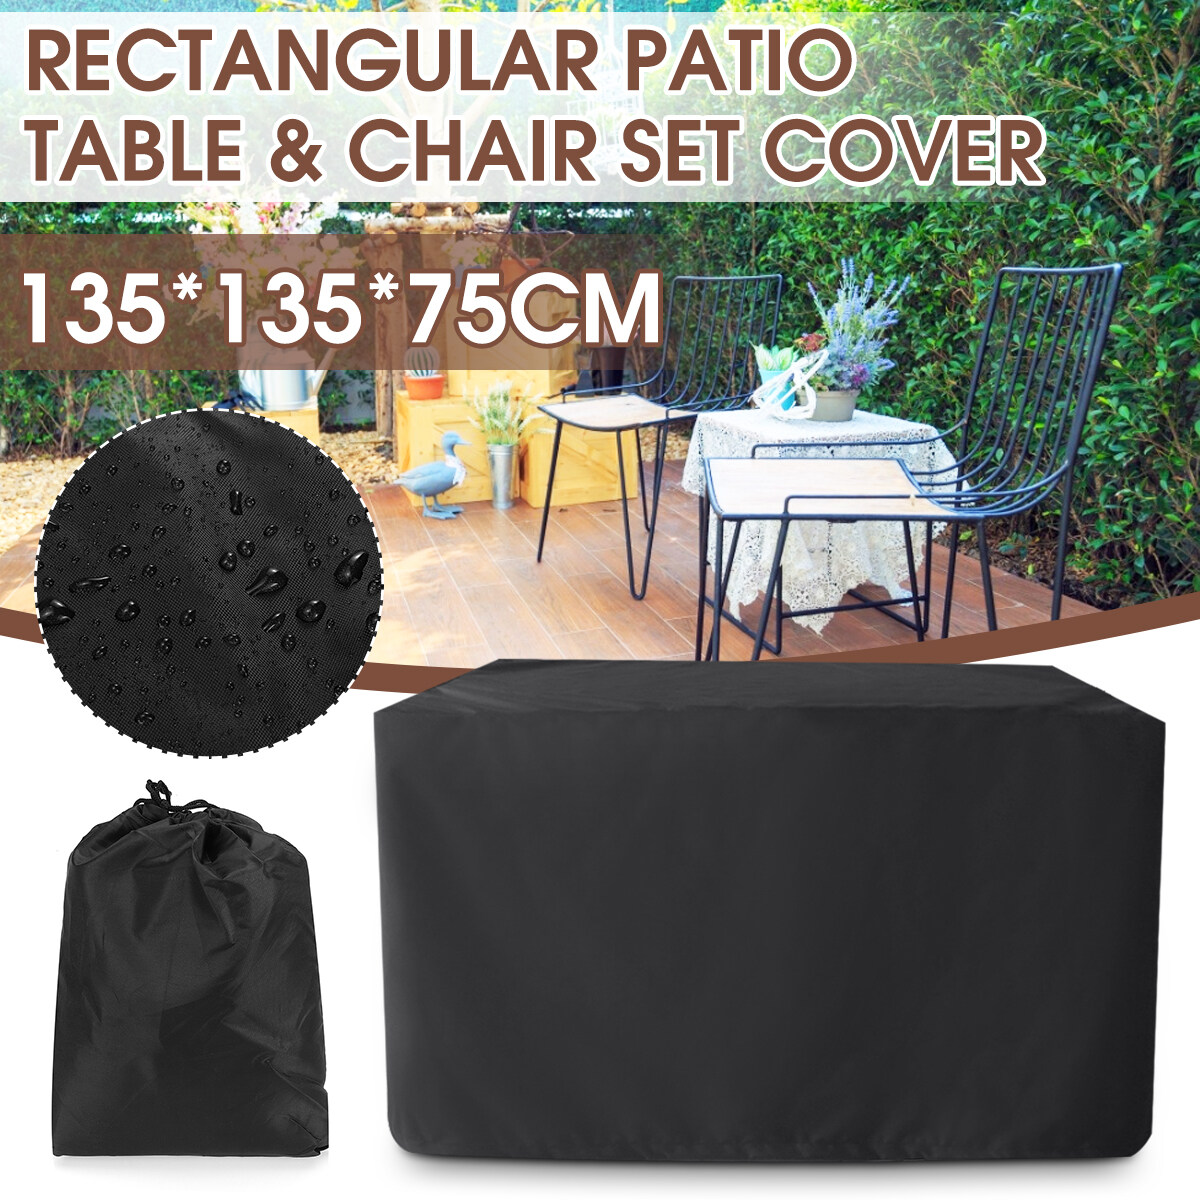 210D Rectangular Table Cover Oxford Cloth Outdoor Furniture Cover 135*135*75cm